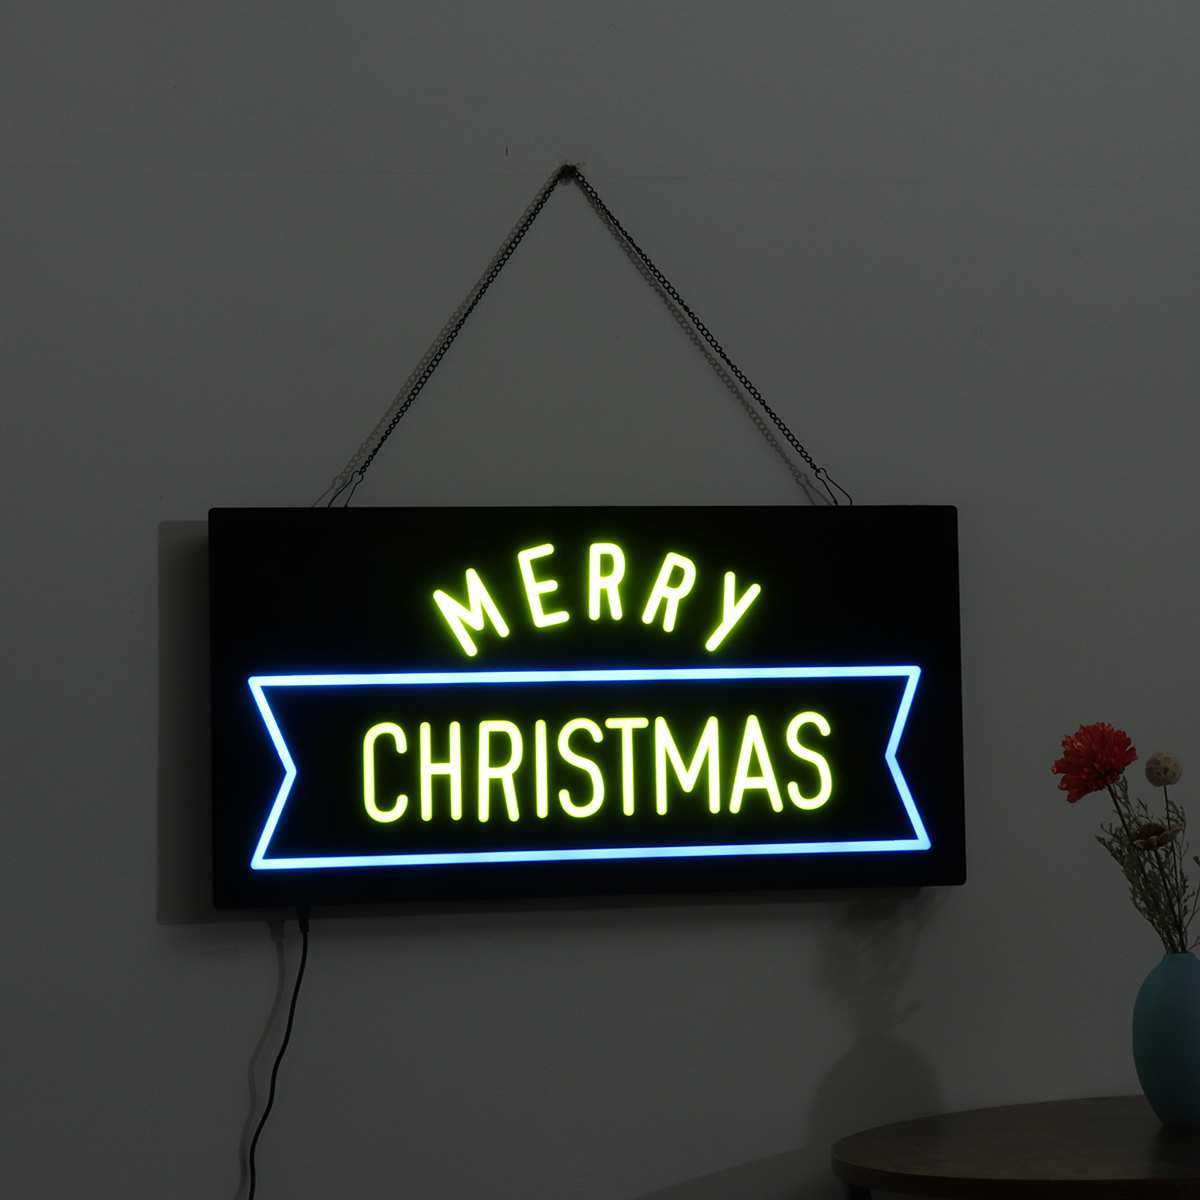 Merry Christmas LED Sign Board Light Hanging Bar Window Display Light Box Party Home Decor Resin Commercial Advertising Lighting